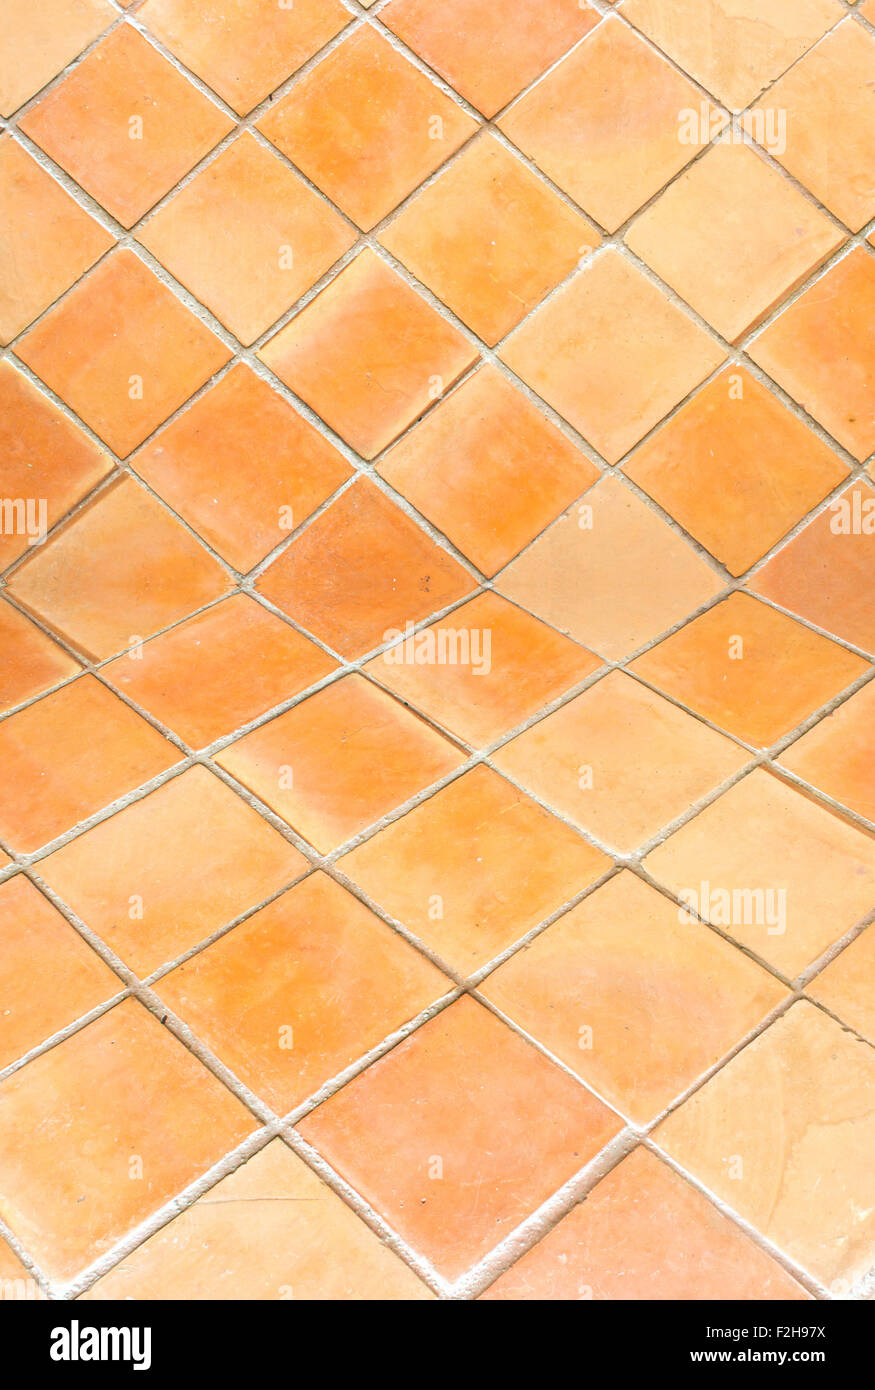 Square Clay Tile Floor Pattern Stock Photos Square Clay Tile Floor